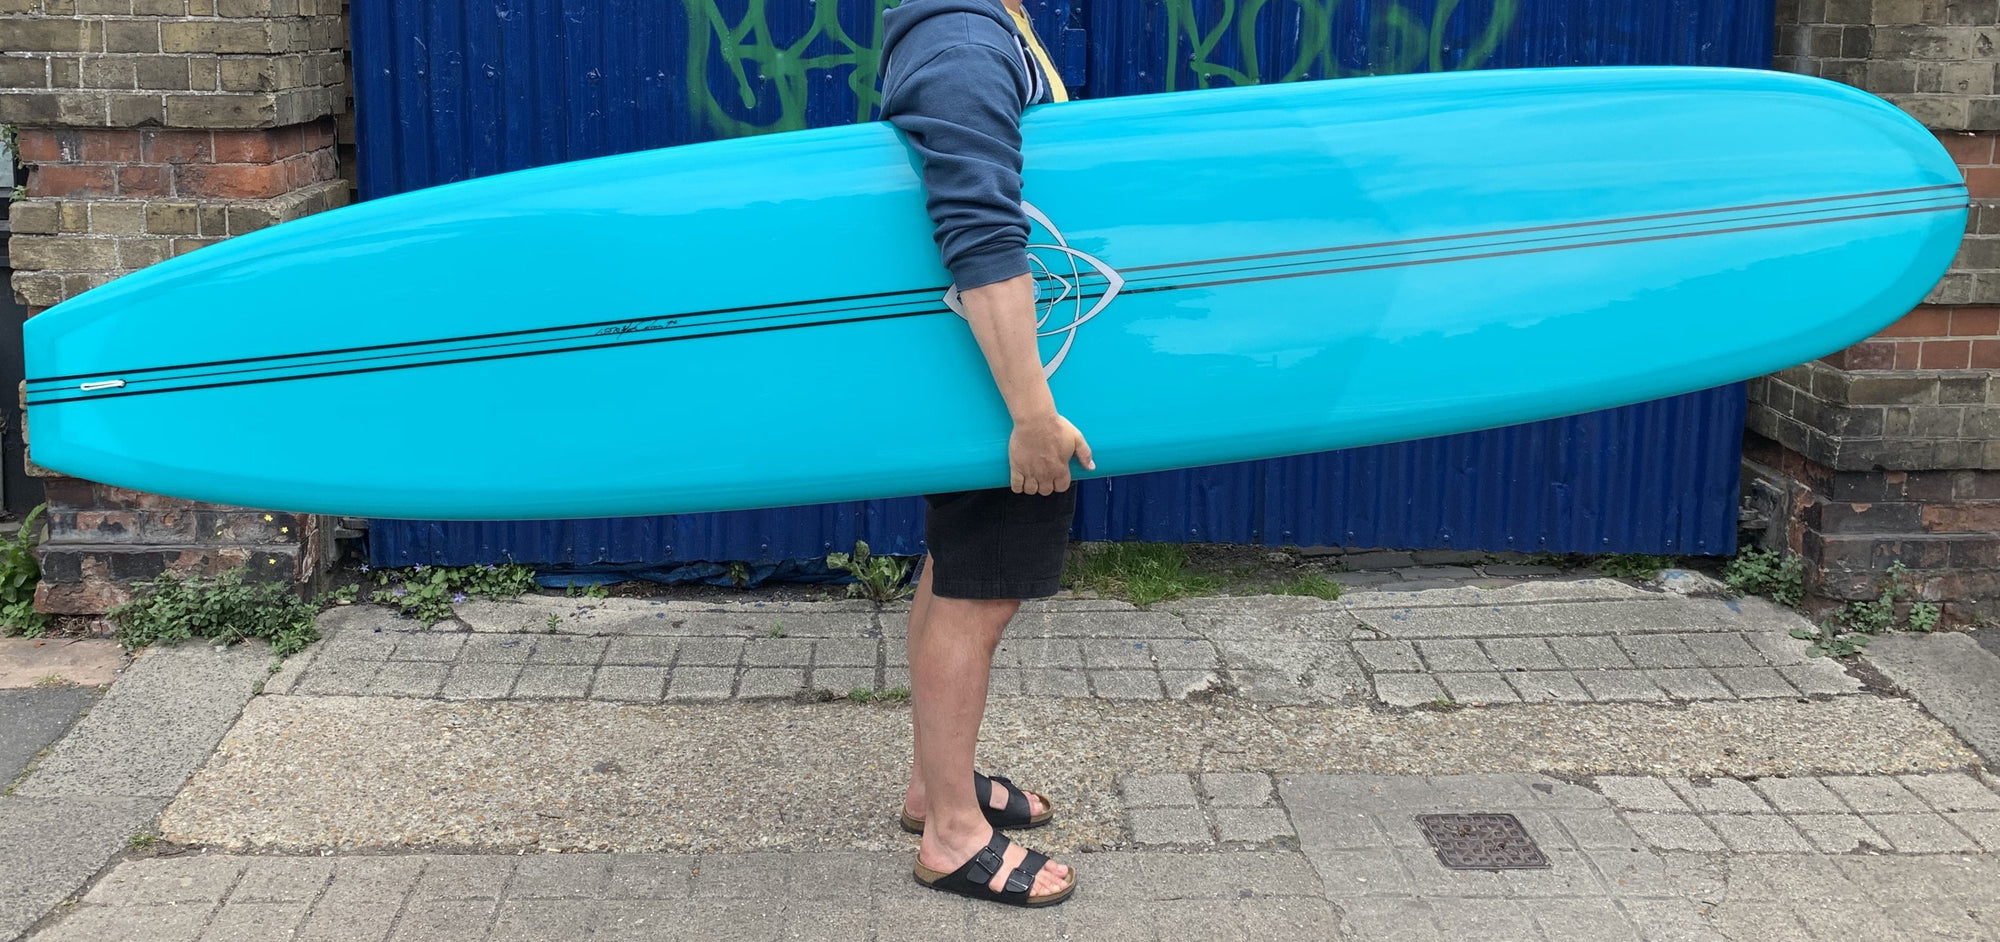 9'6 Bing Silver Spoon in Teal Resin Tint